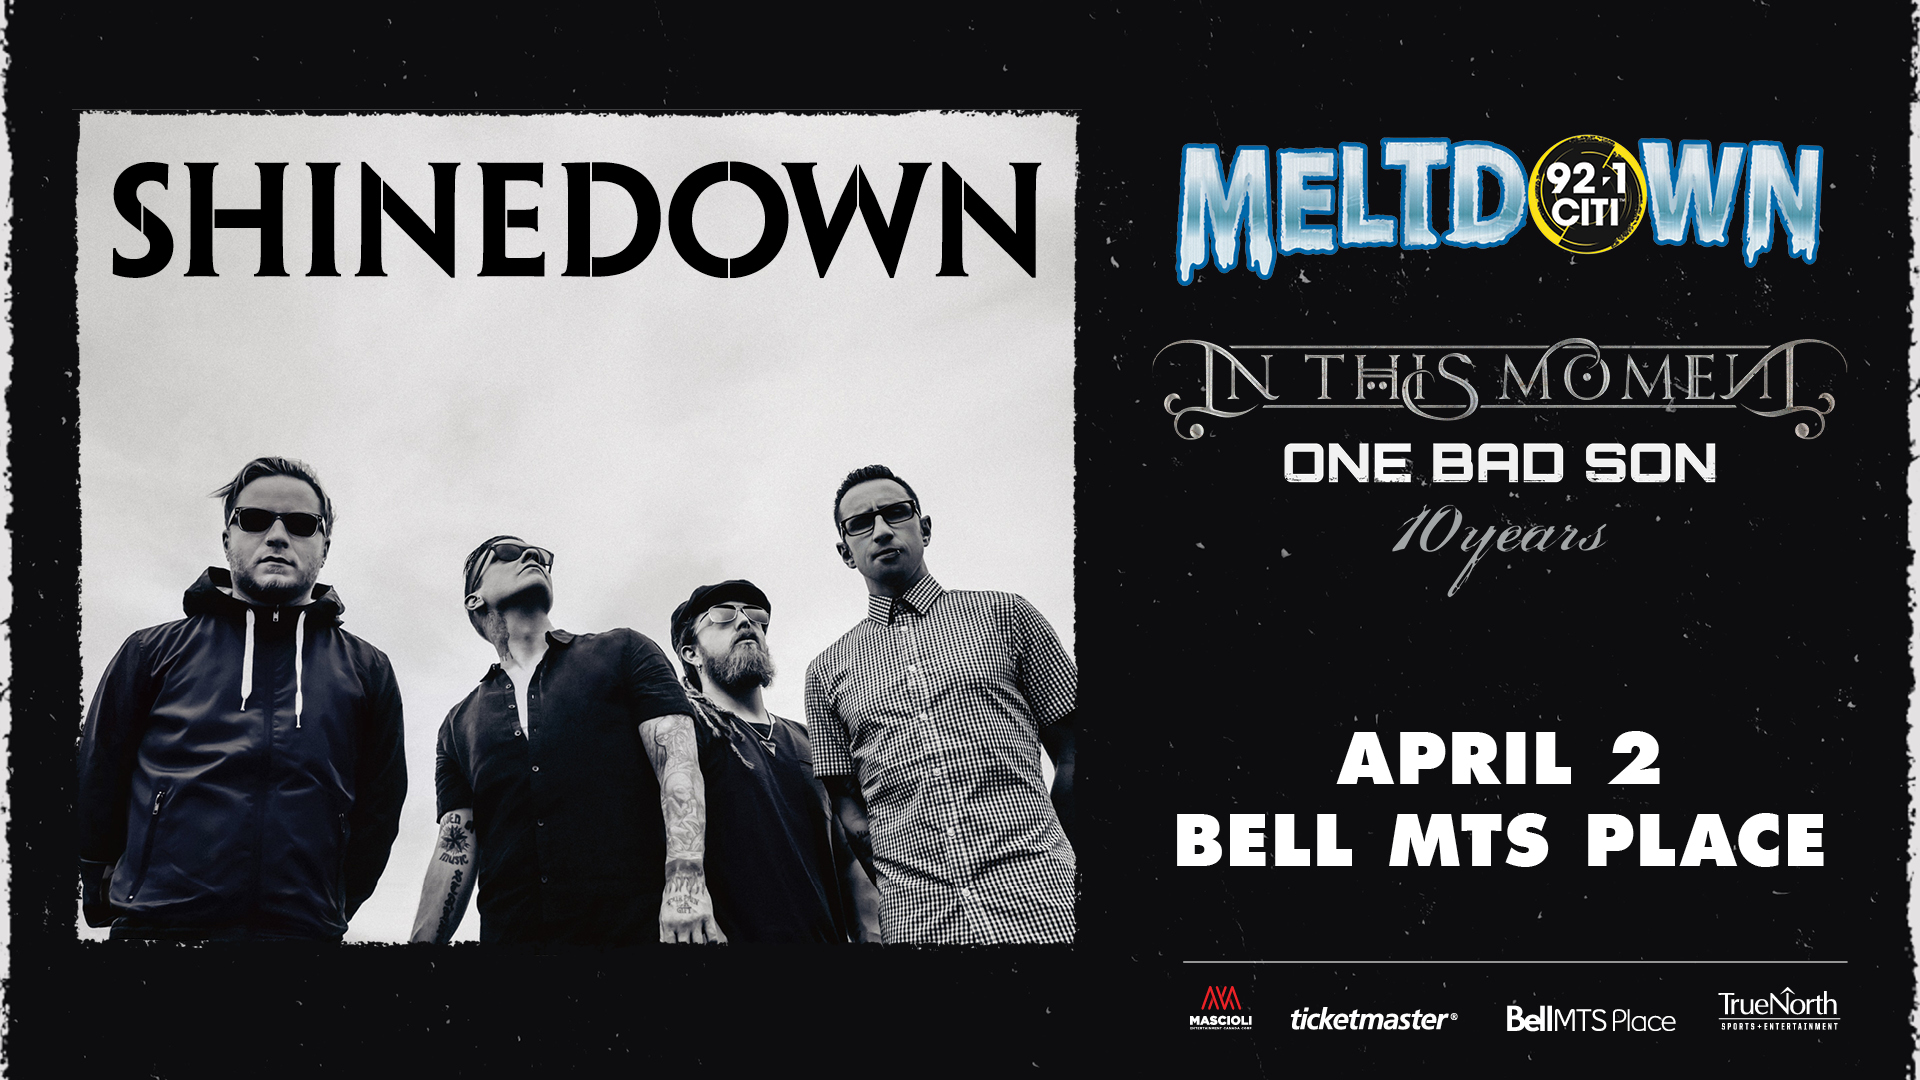 921 Citi Meltdown Tour Featuring Shinedown With Special Guests In